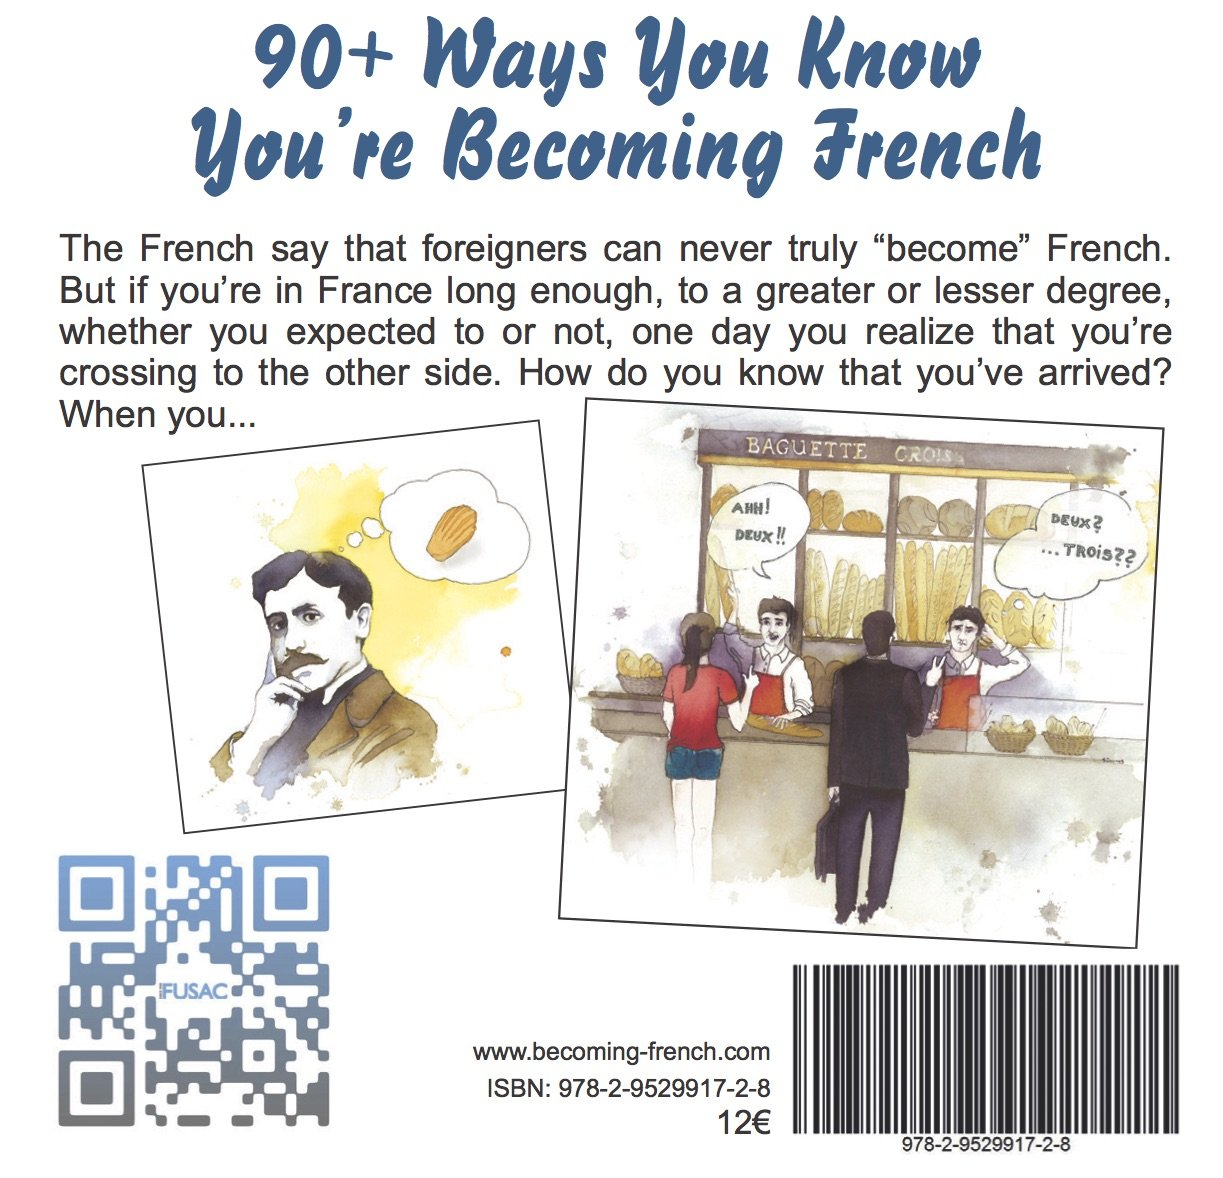 fusac_90-youre-becoming-french-p53